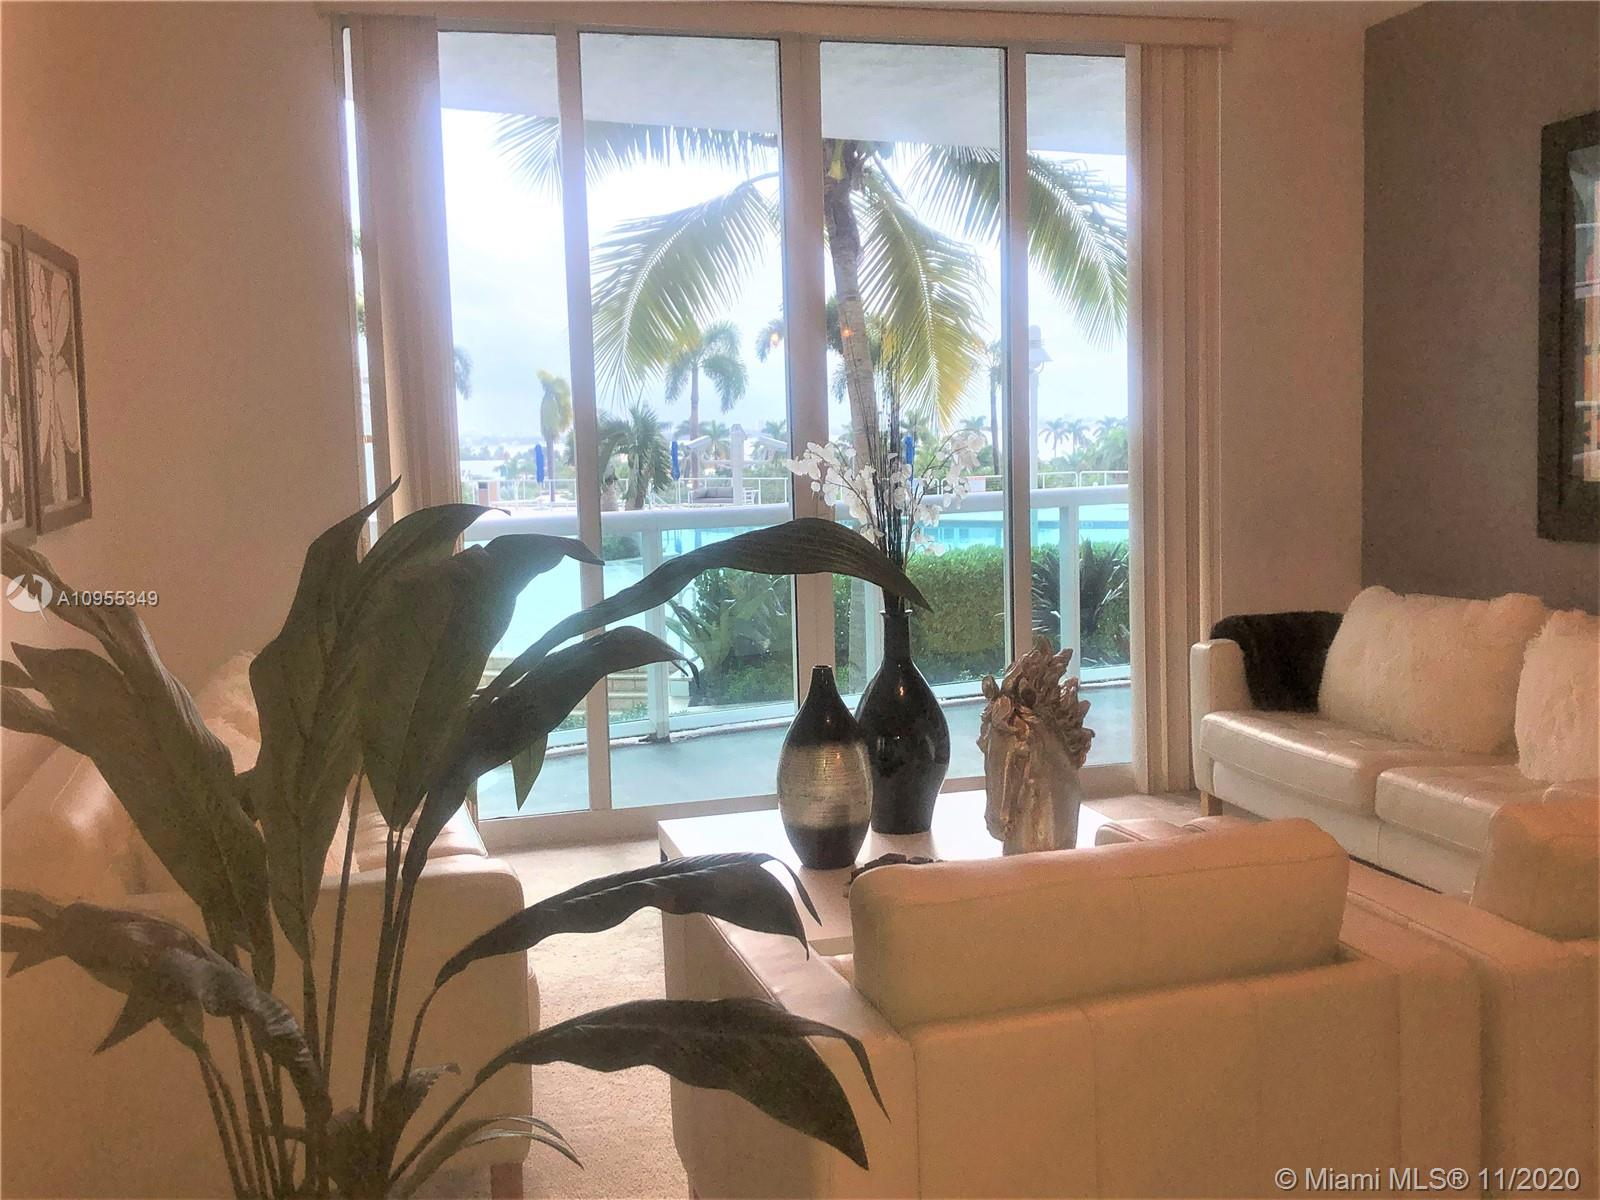 This spacious and bright condo residence features 2 Bed 2 Bath split floor plan. Marble floors in entrance, kitchen and bathrooms. Panoramic floor to ceiling impact windows. Open kitchen with snack bar.  Master Bath with dual vanity, spa tub and glass shower. Walk-ins closet. Sit and relax in the oversize balcony with gorgeous views of Biscayne Bay and the Intracoastal Waterway. It is a true water lover's paradise with a private slip, on-site marina. 360 Condo provides upscale amenities such as a bayside pool, fitness center, men and women's saunas, 24-hour guard gate service, valet, covered entrance, and garage parking. With an exceptional location, 20 minutes from the Miami International Airport, South Beach, downtown Miami and Brickell Ave, and 15 minutes from the Shops at Bal Harbour.